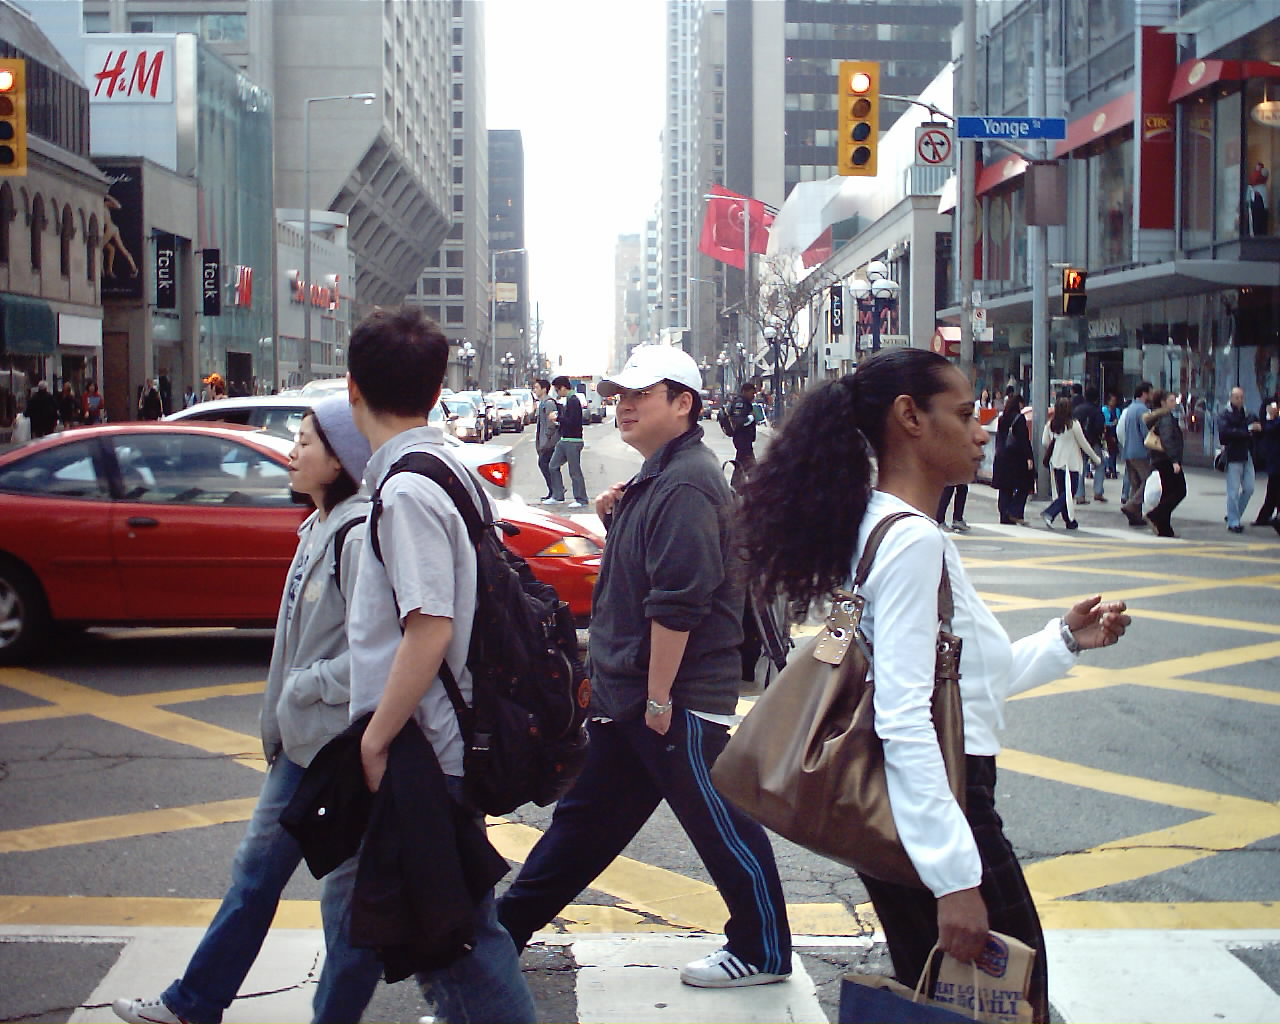 Photo of pedestrians at Bloor & Yonge